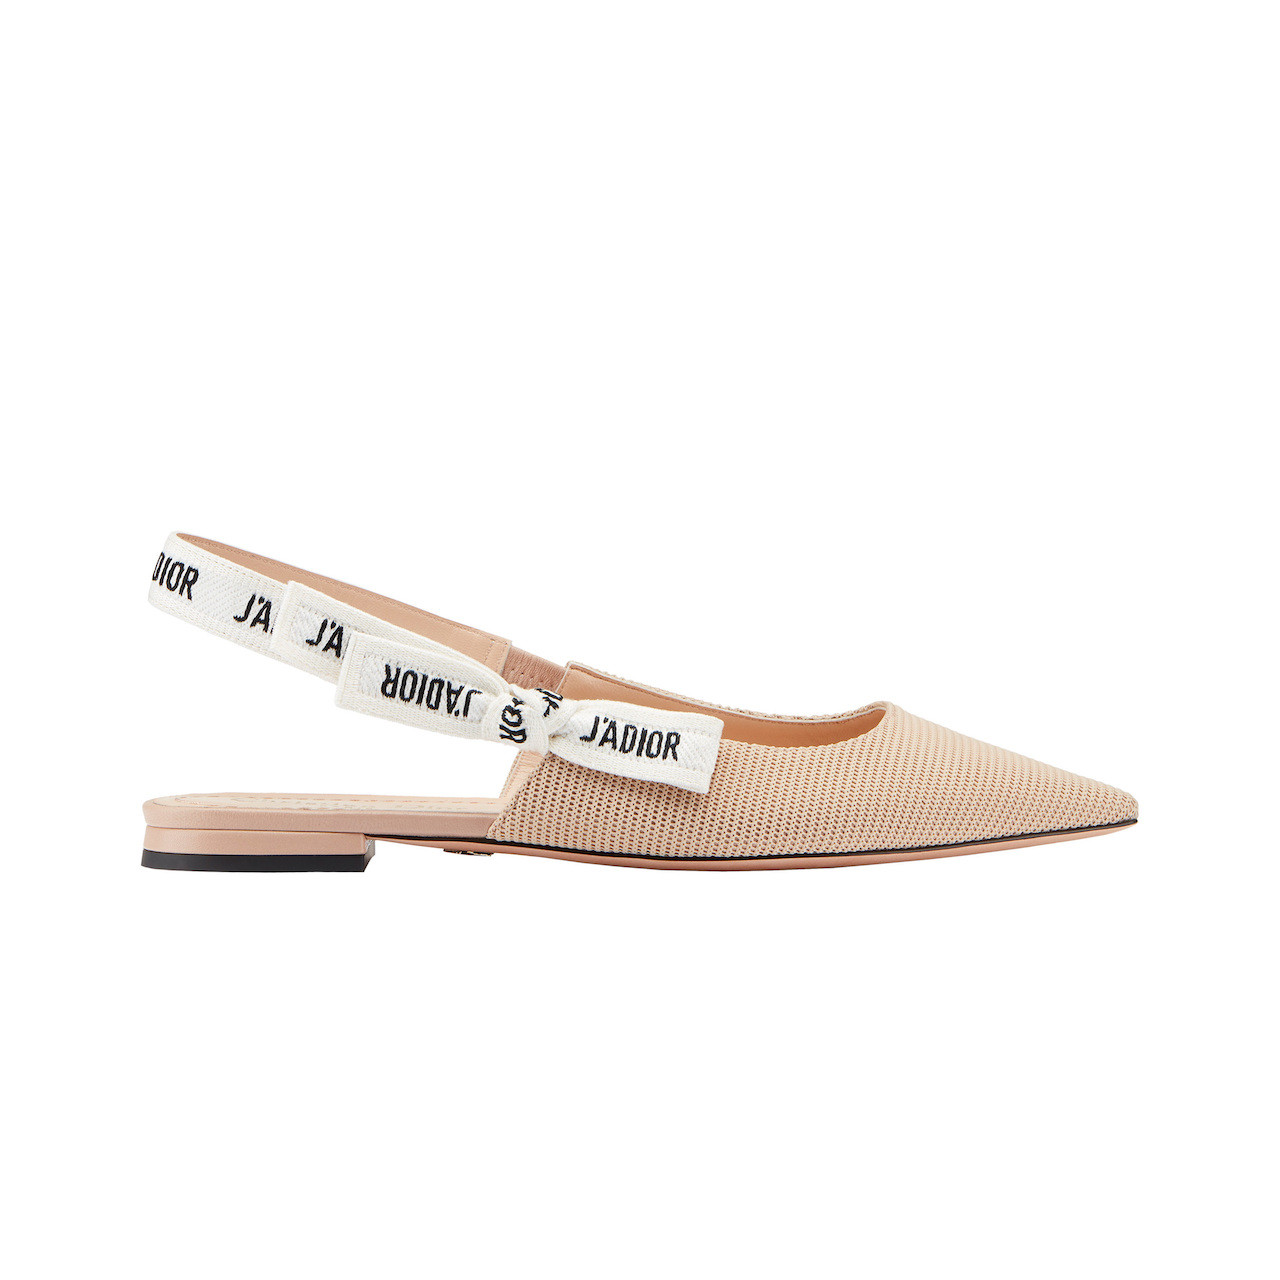 The J'Adior slingback ballerina in nude technical fabric, embroidered ribbon and 1-centimeter heel.